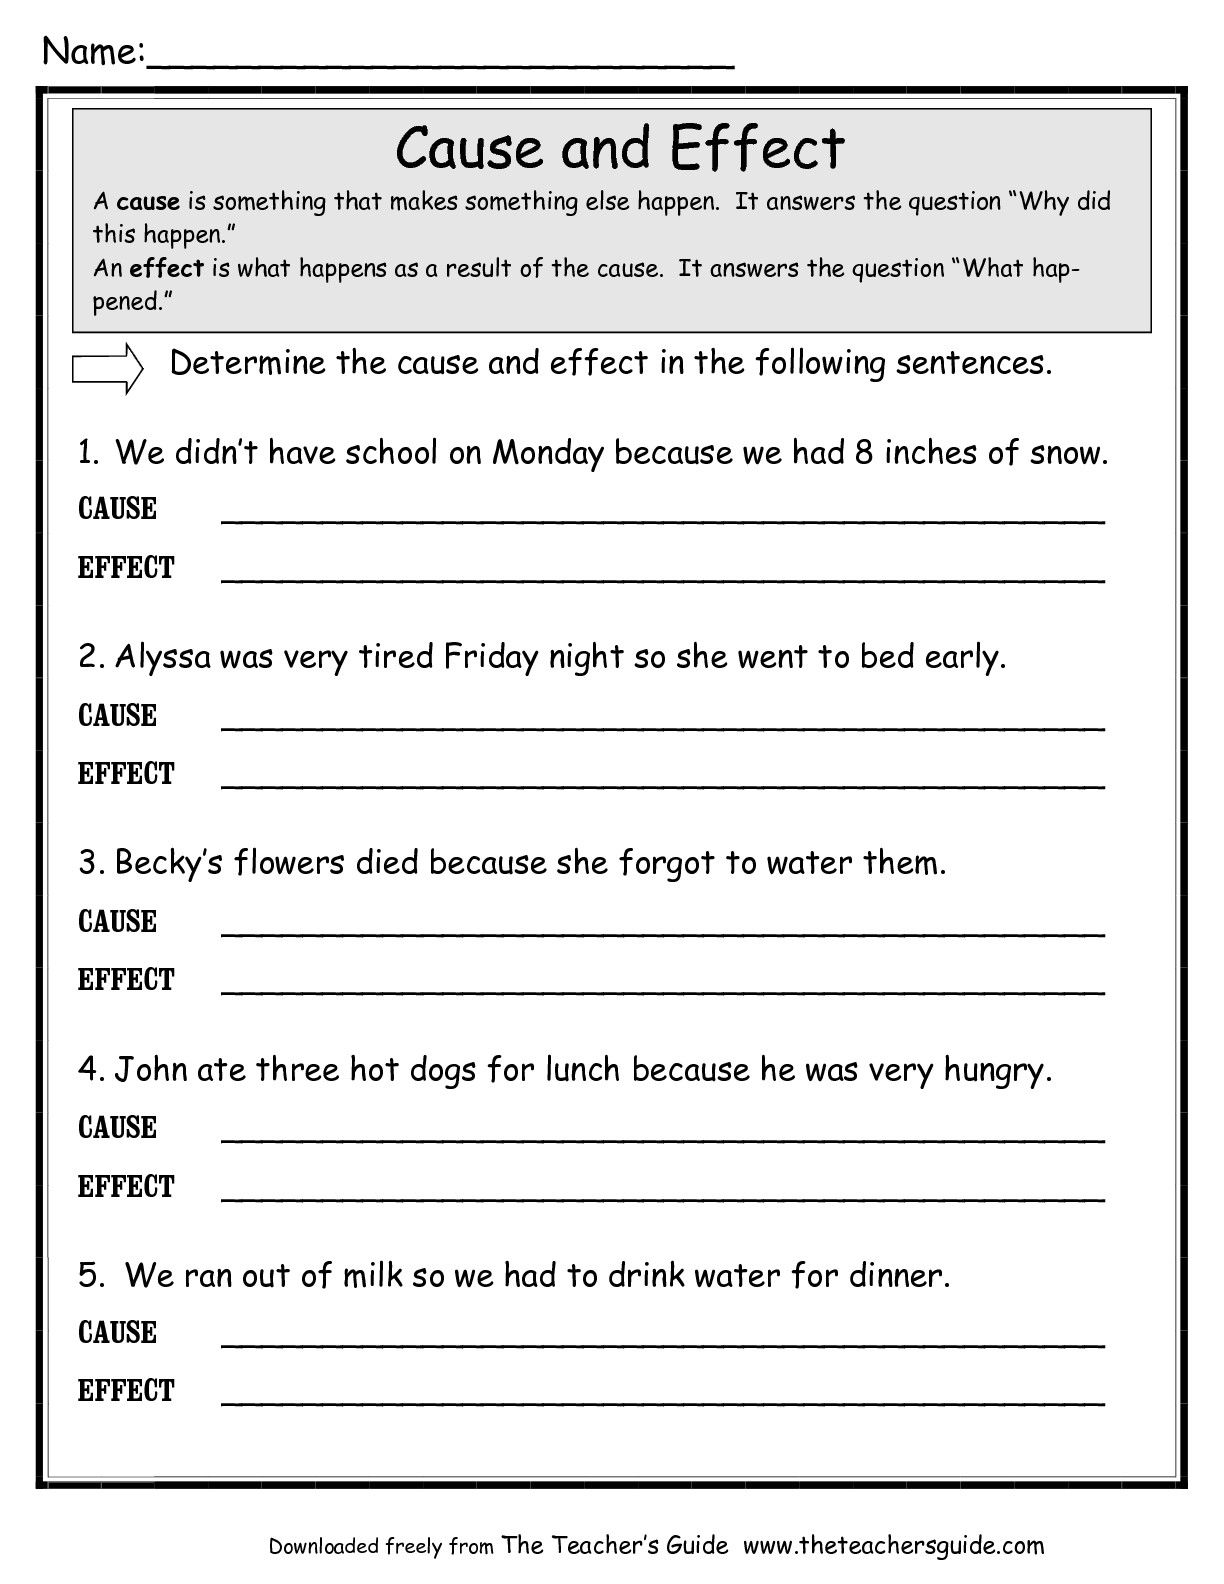 cause and effect worksheet - Google Search   Cause and effect worksheets [ 1584 x 1224 Pixel ]